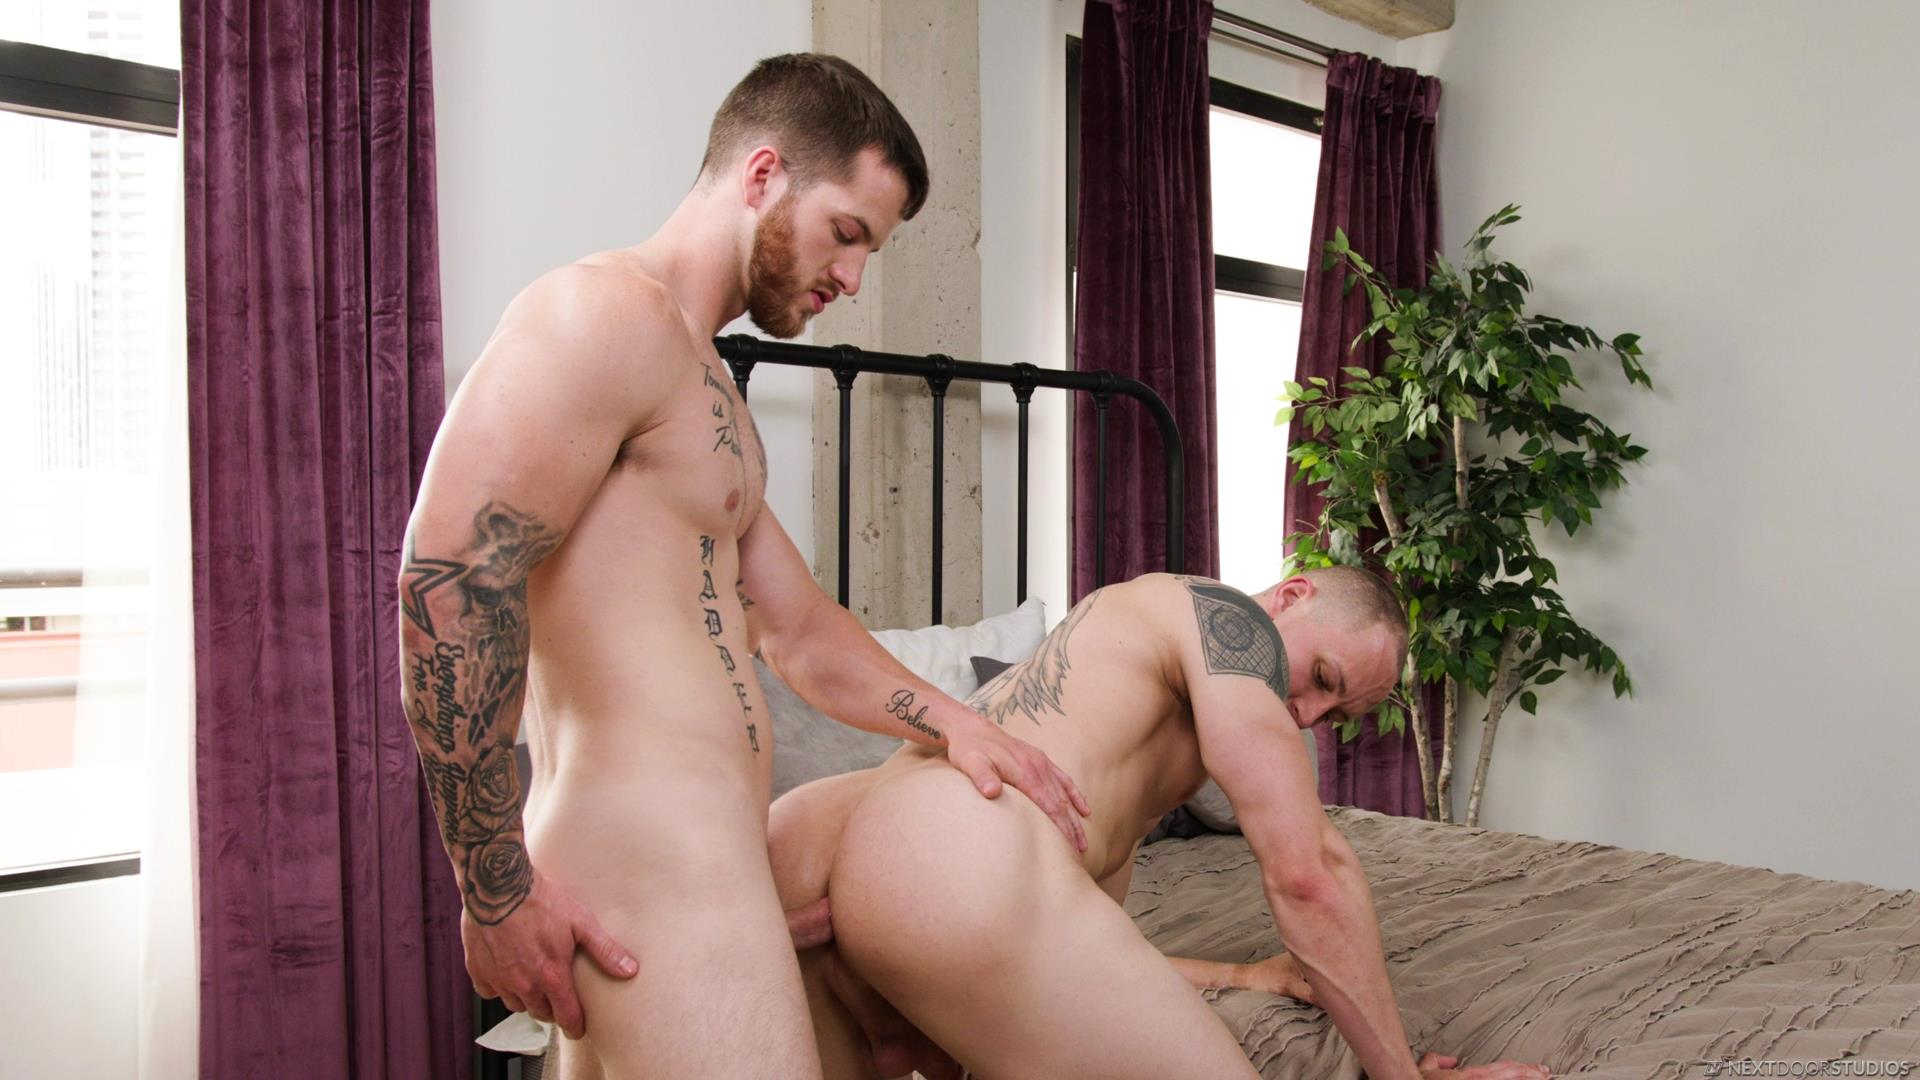 Next-Door-Buddies-Trevor-Laster-and-Quentin-Gainz-Big-Cocks-Bareback-Flip-Gay-Sex-Video-14 Quentin Gainz Bareback Flips With His New Boy Toy Trevor Laster